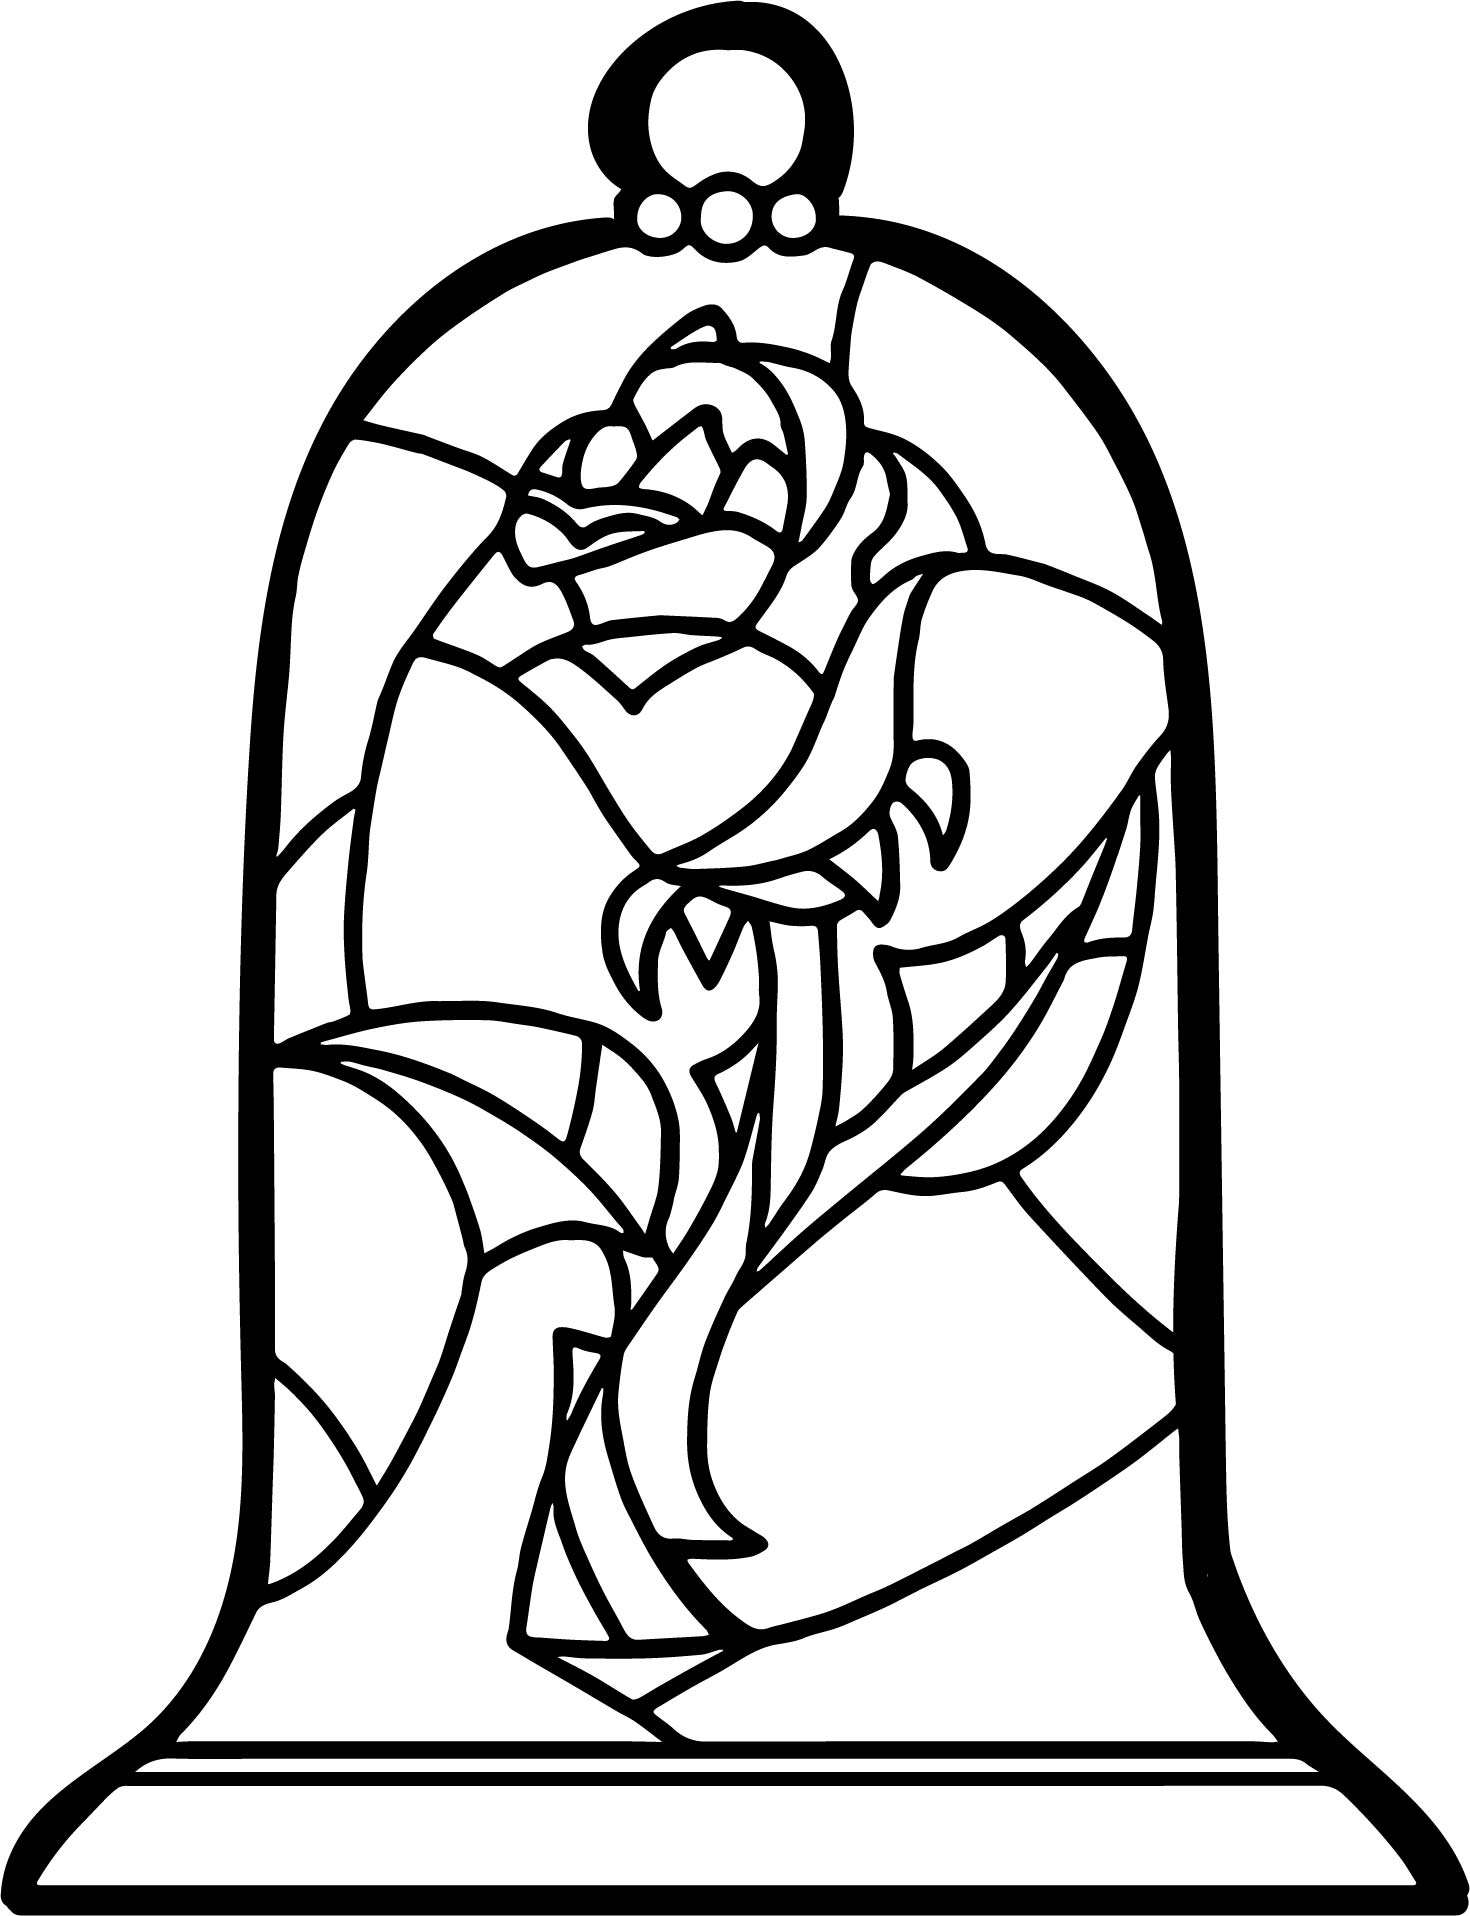 1470x1916 Stained Glass Rose Coloring Page Wecoloringpage